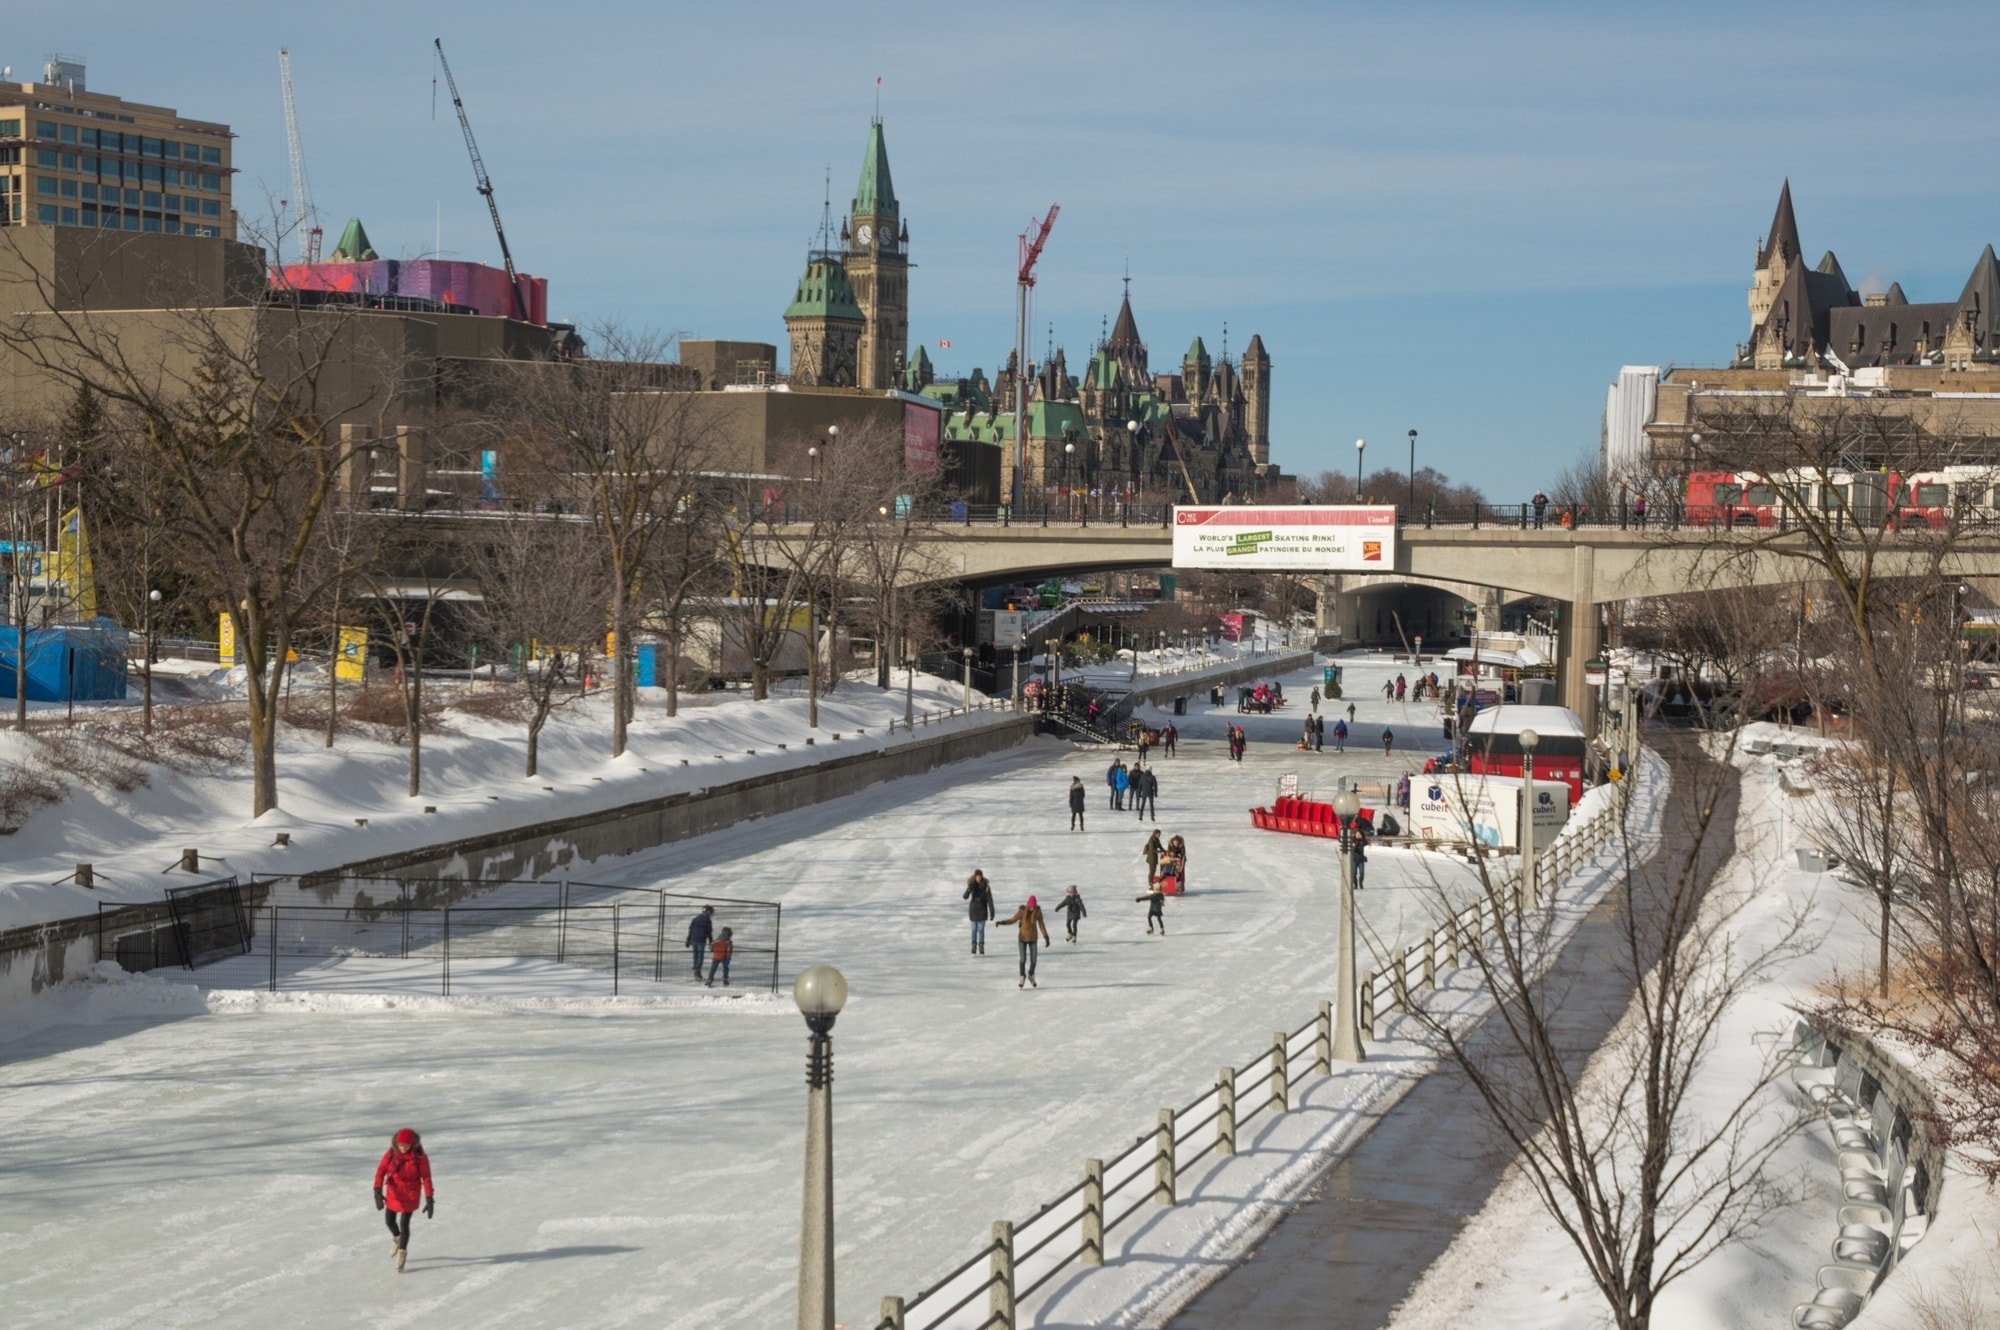 Take your kids ice skating on the Rideau Canal in winter